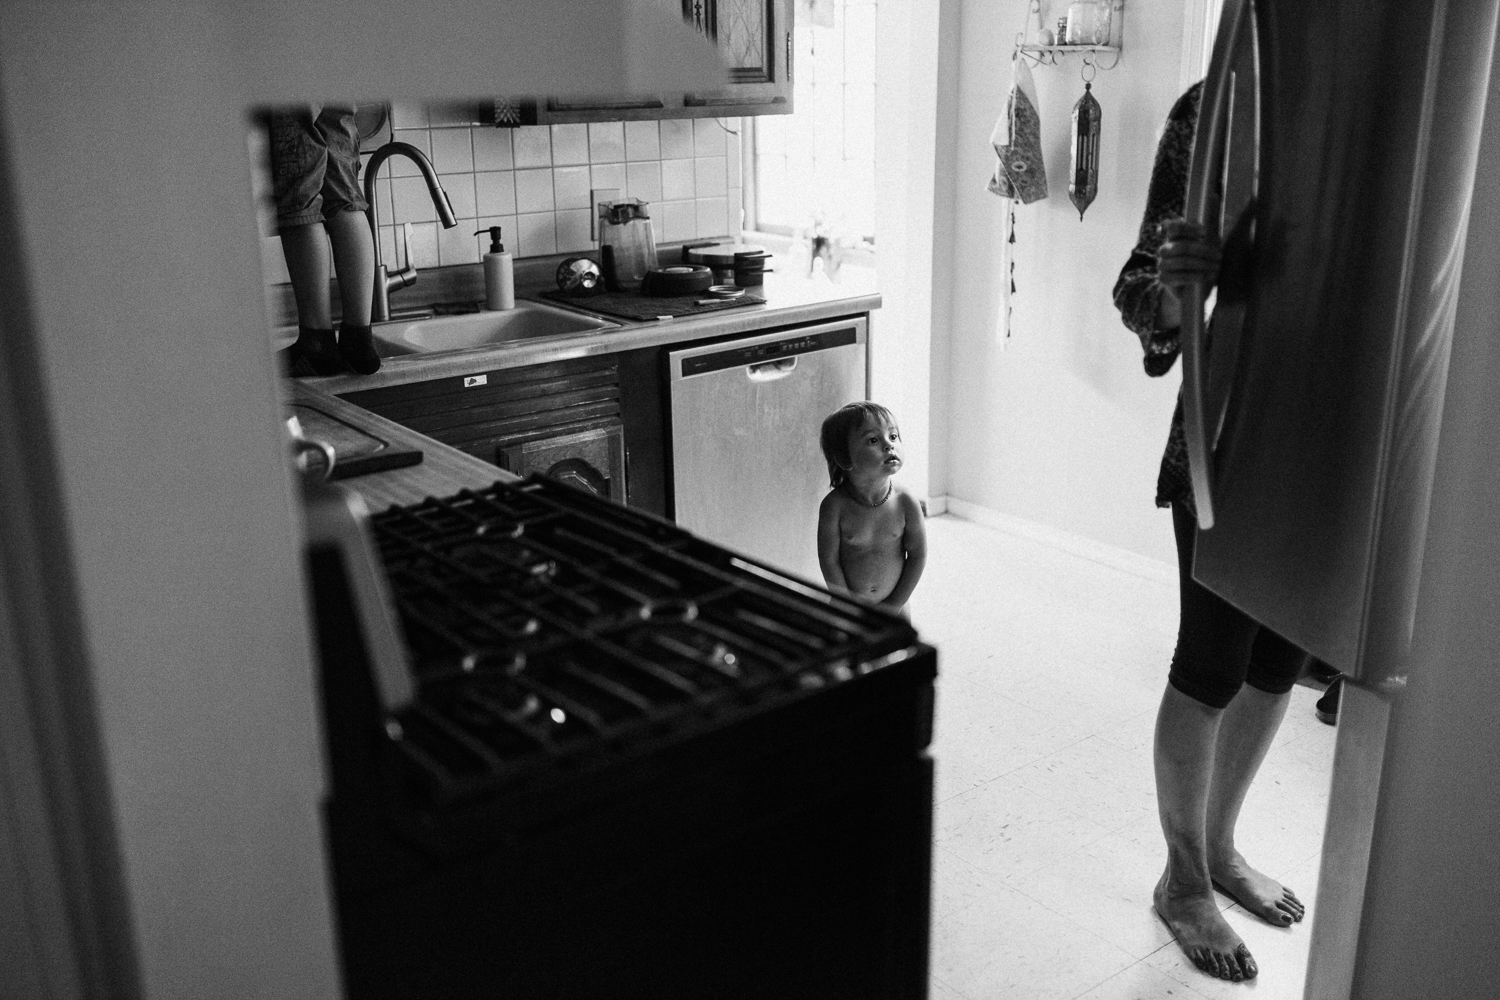 mother-and-sons-in-kitchen-getting-snacks-Nikol-family-in-home-photo-session-with-jen-fairchild-photography-saltlakecity-utah